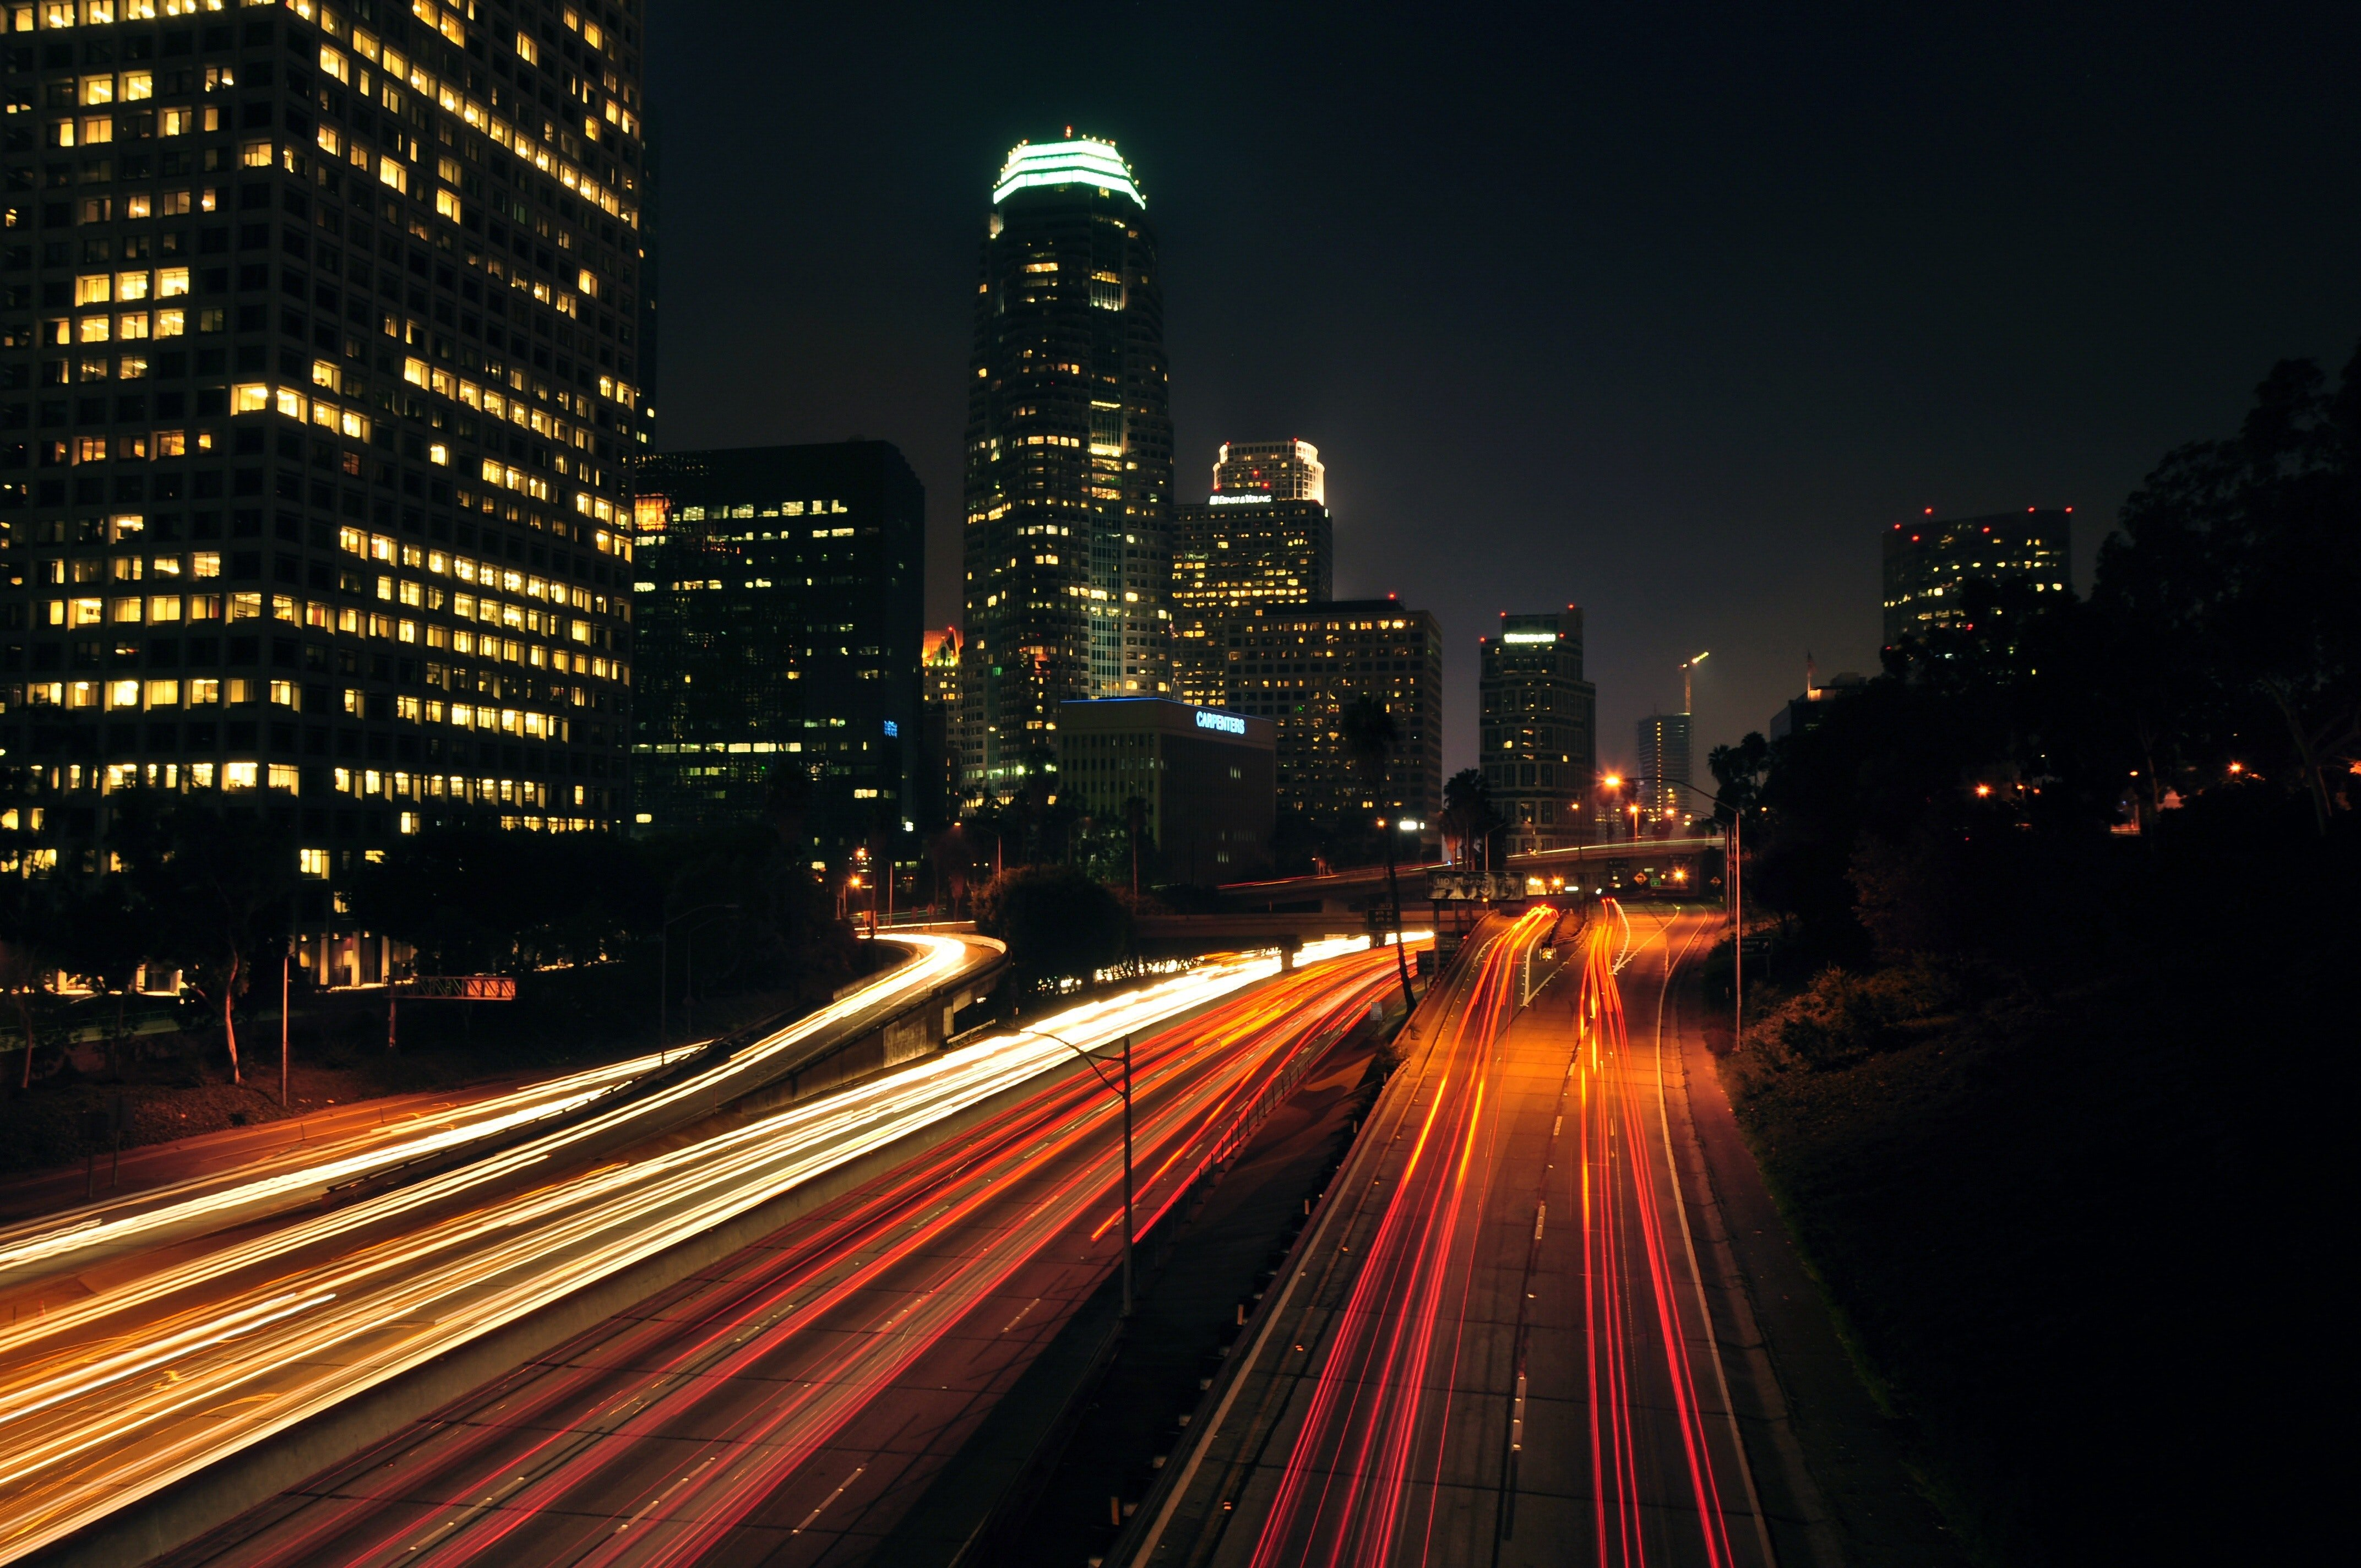 Light Trails on Highway at Night · Free Stock Photo